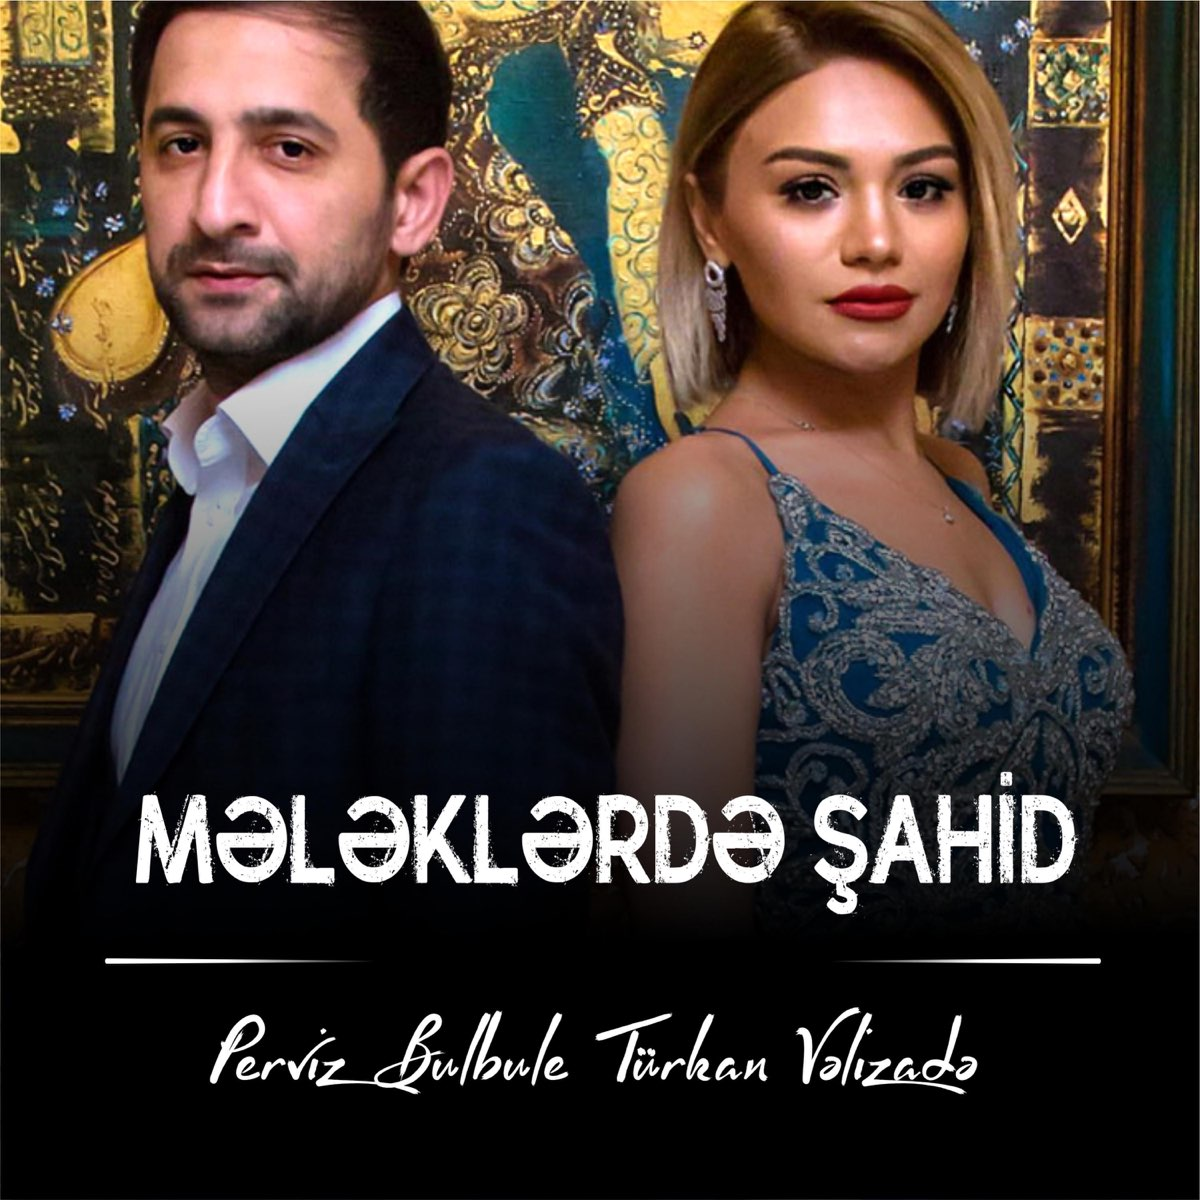 Mələklər Də Sahid Feat Turkan Velizade Single By Perviz Bulbule On Apple Music